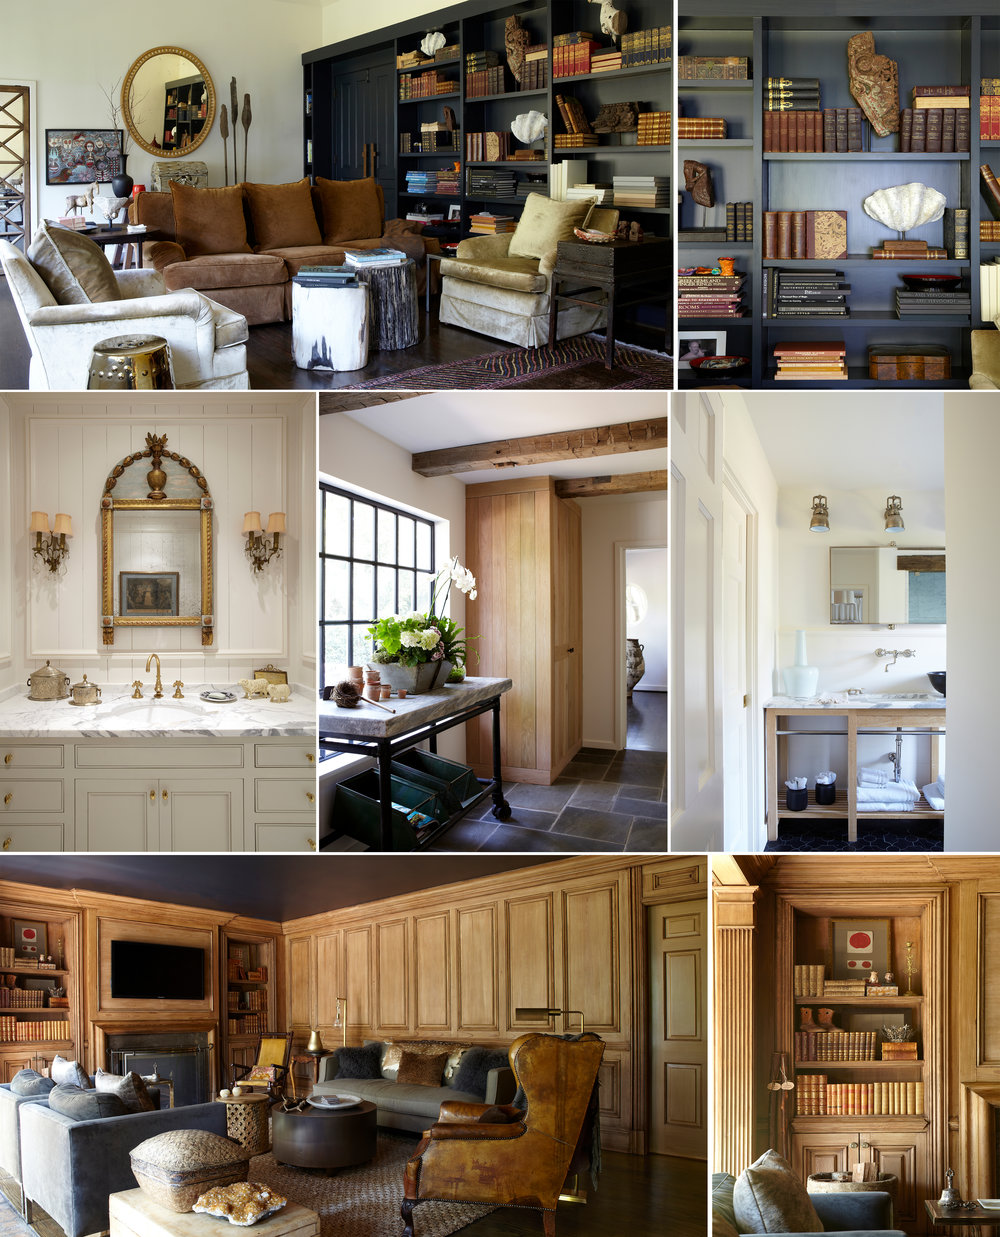 Alabama Abingdon Charm collage interior design, living room, den, bathroom, hallway architecture